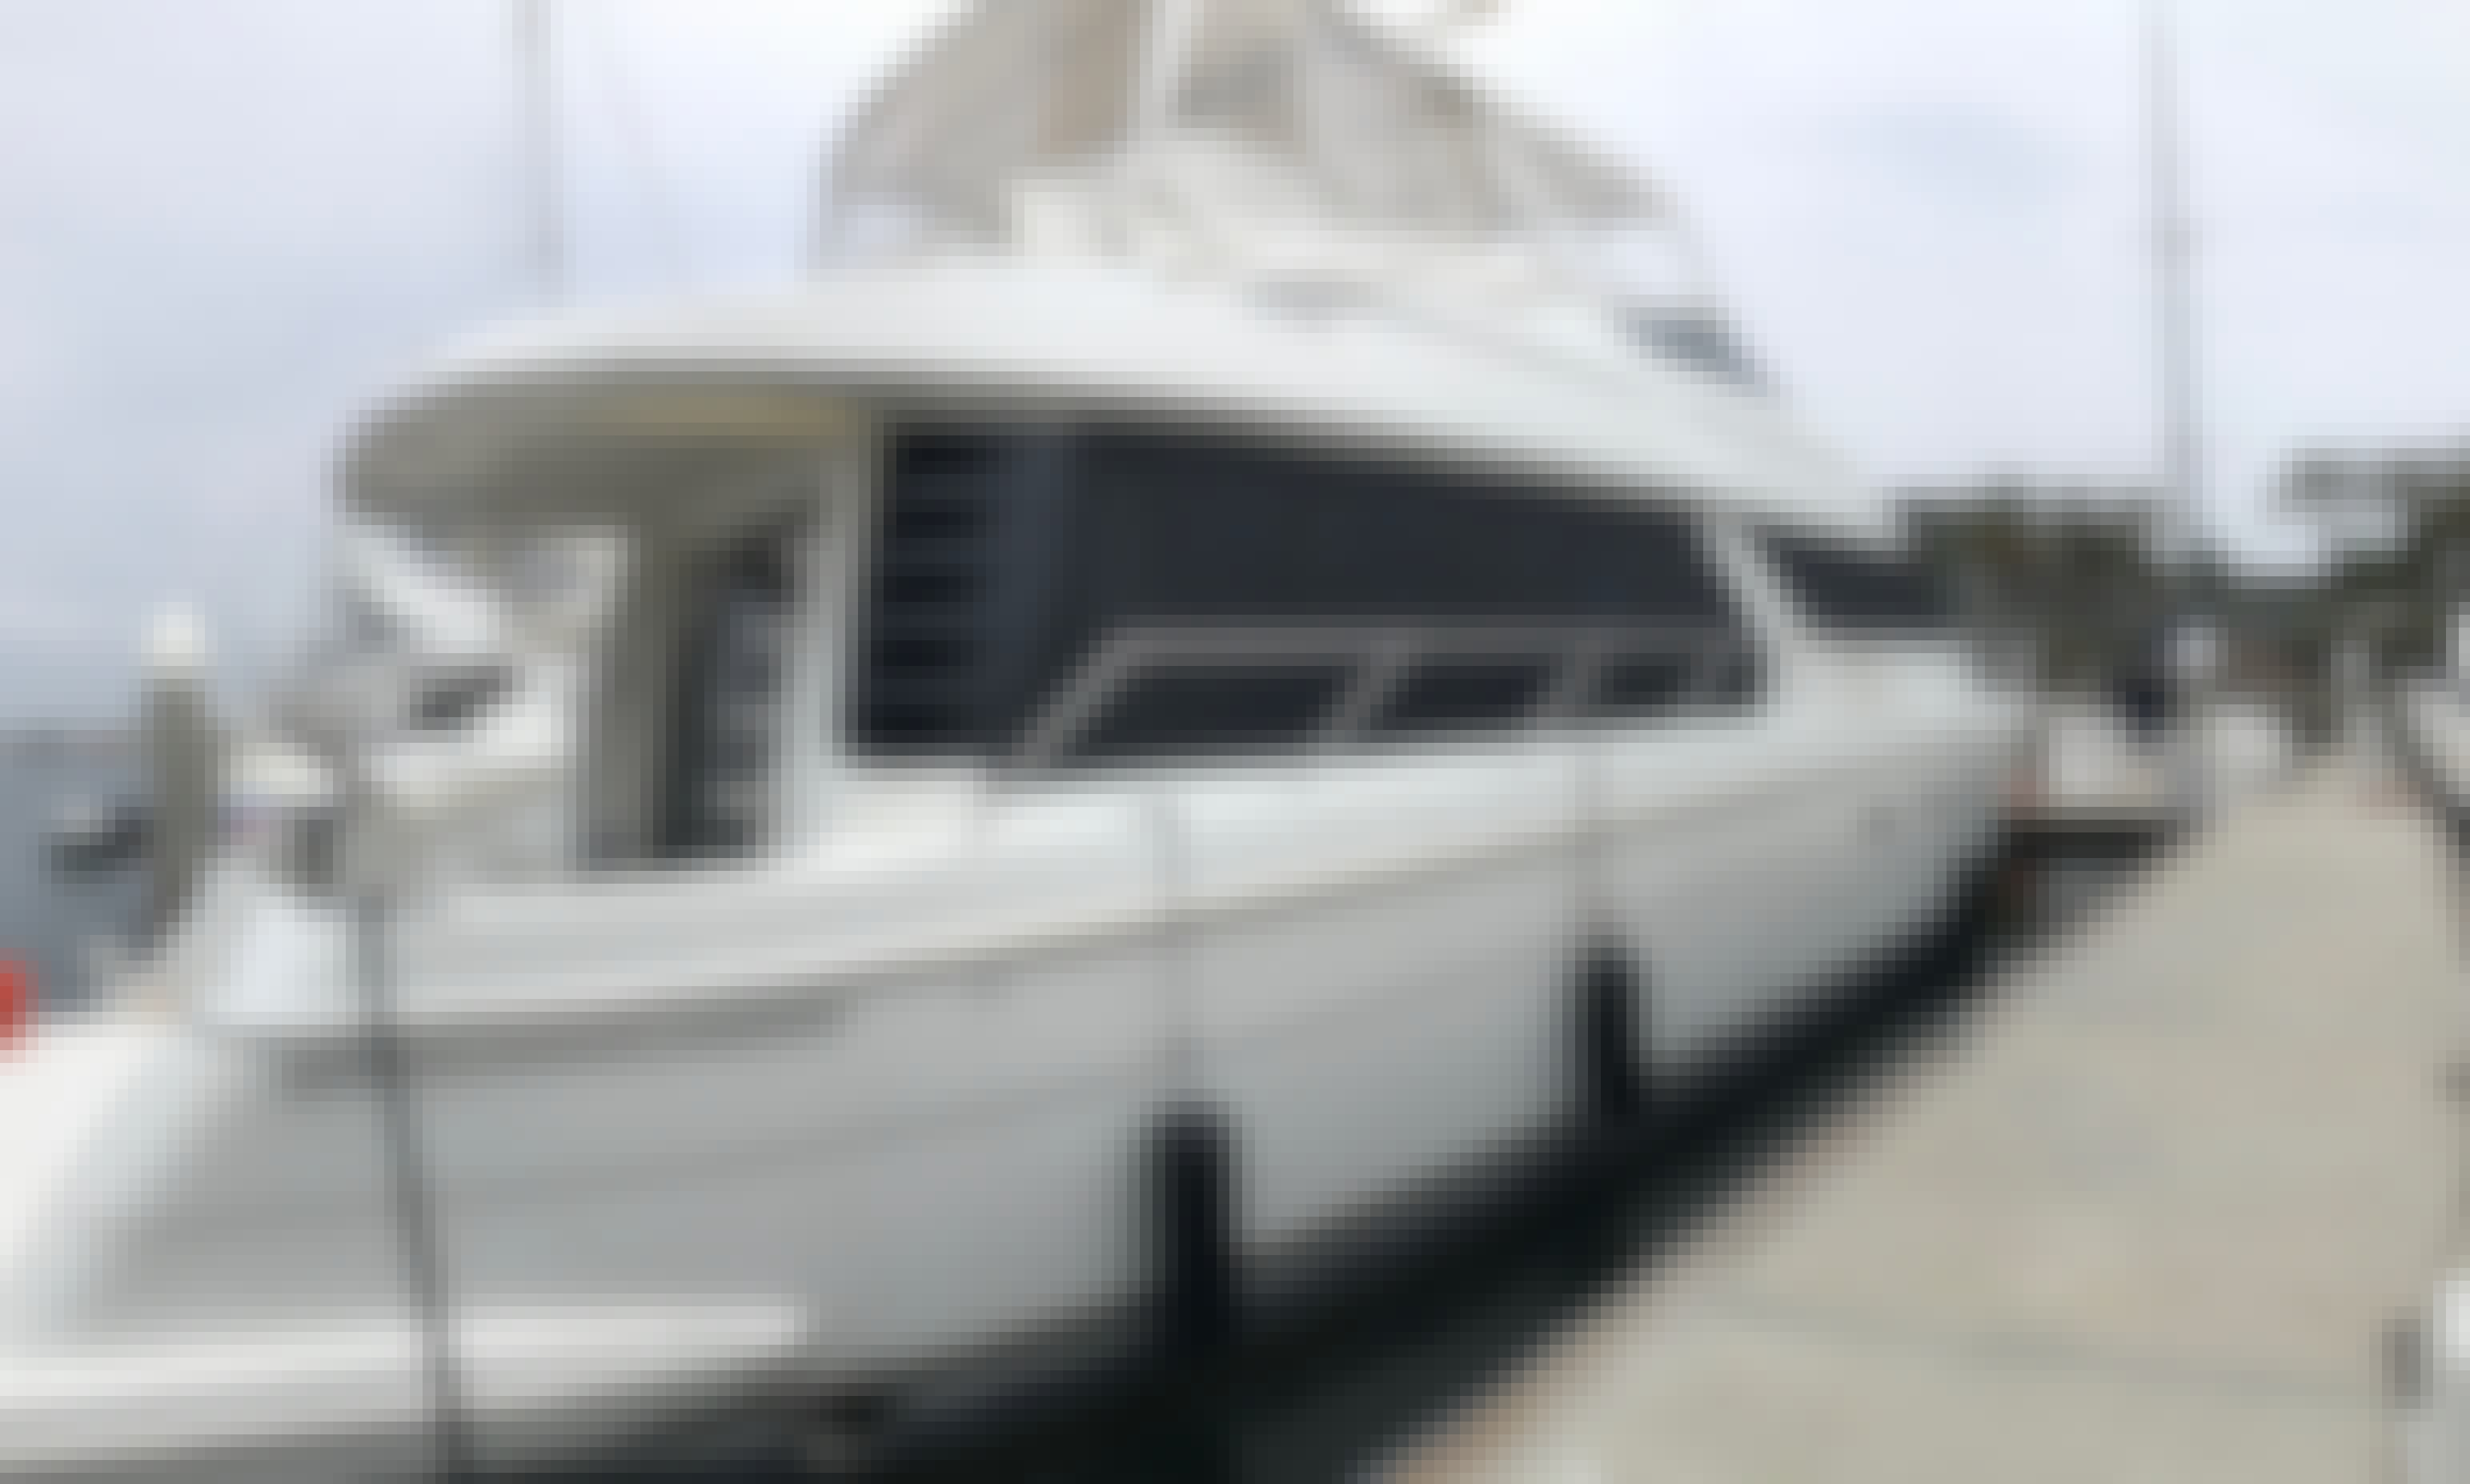 Carver 60 Motor Yacht Charter for 12 People in Marina del Rey, California